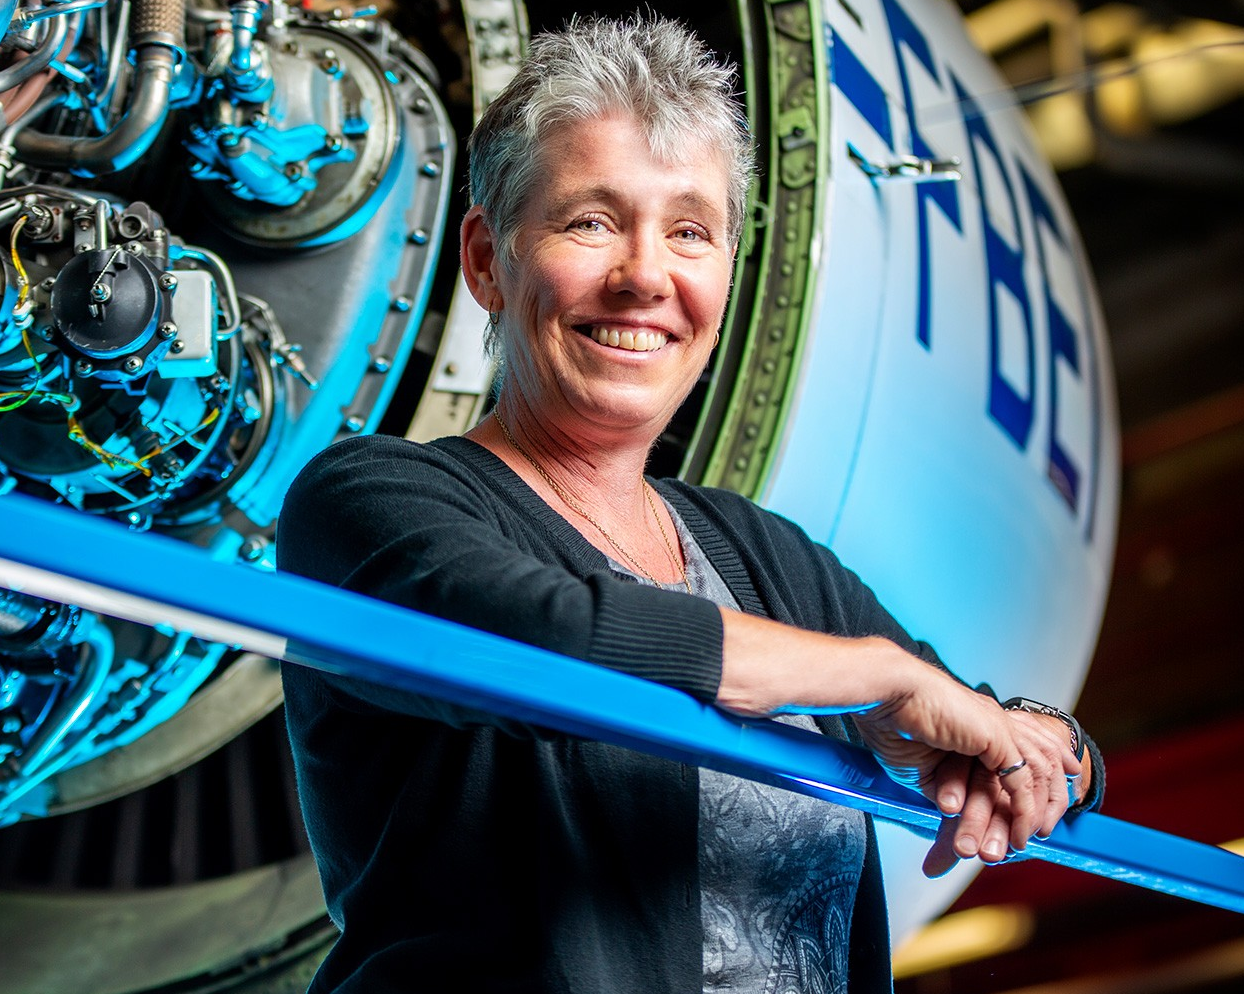 nserc chair design engineering your zone flip multiple colors in aerospace ncade catharine marsden is taking experiential learning to new heights